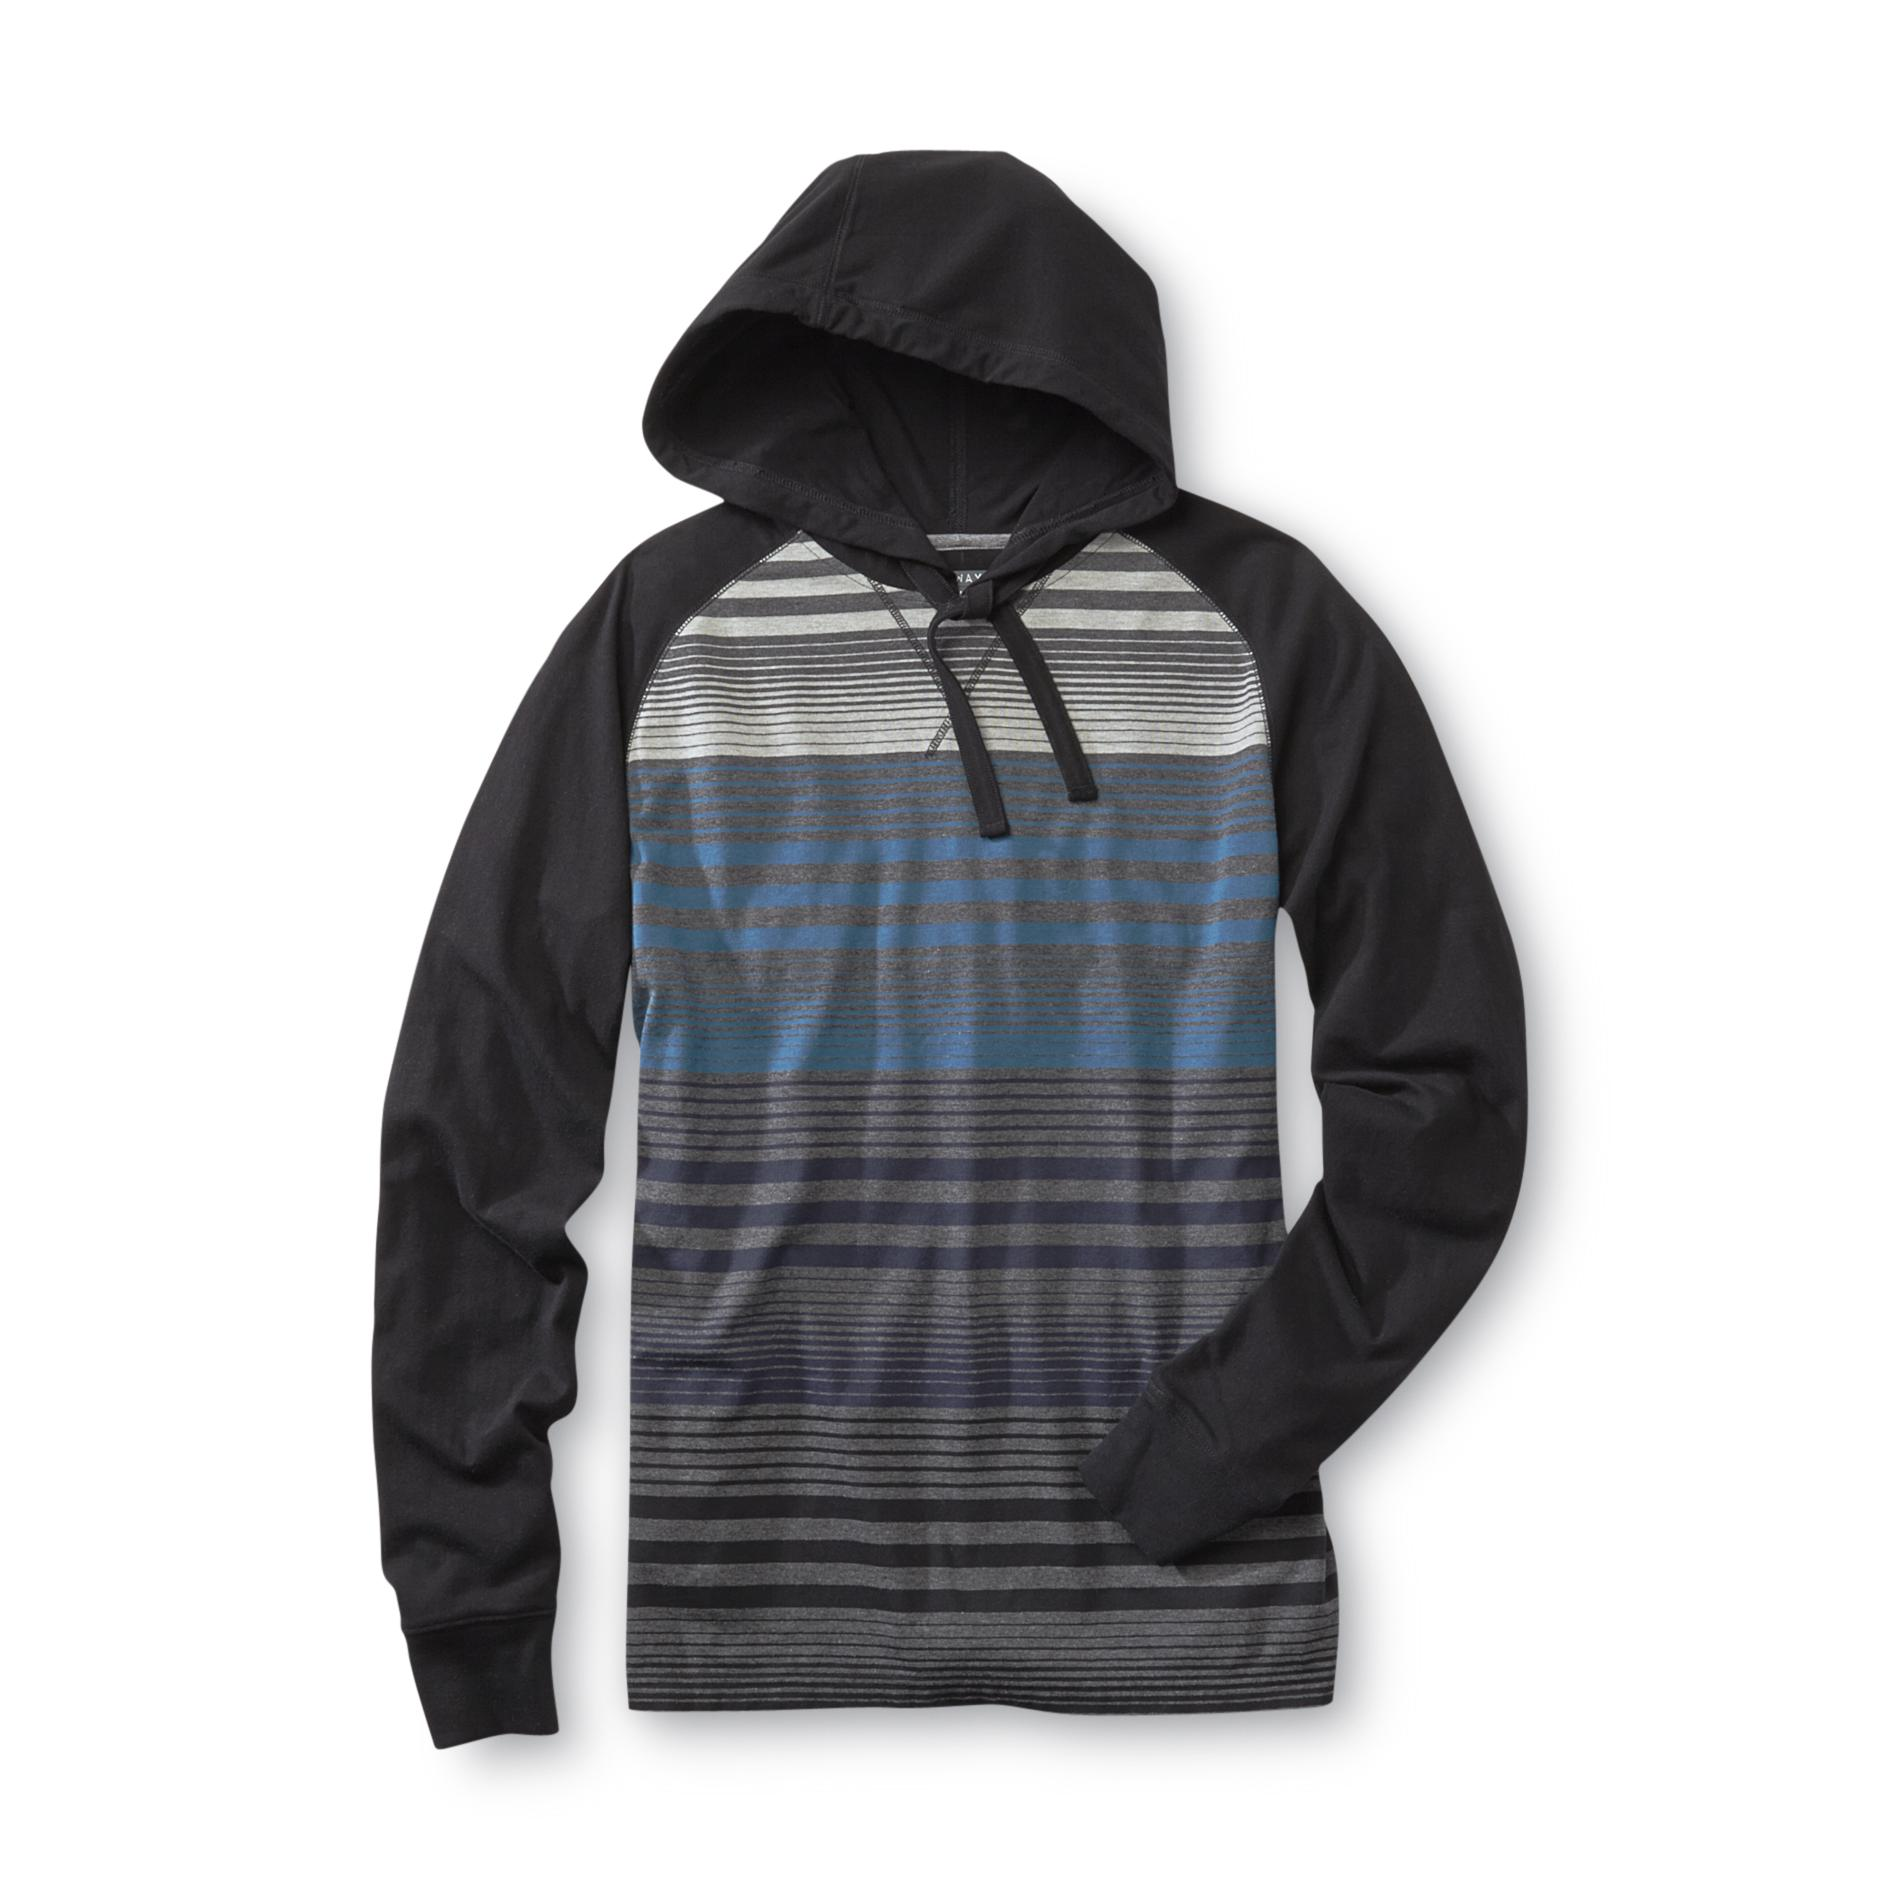 Always Push Forward Men's Jersey Knit Hoodie - Striped at Kmart.com